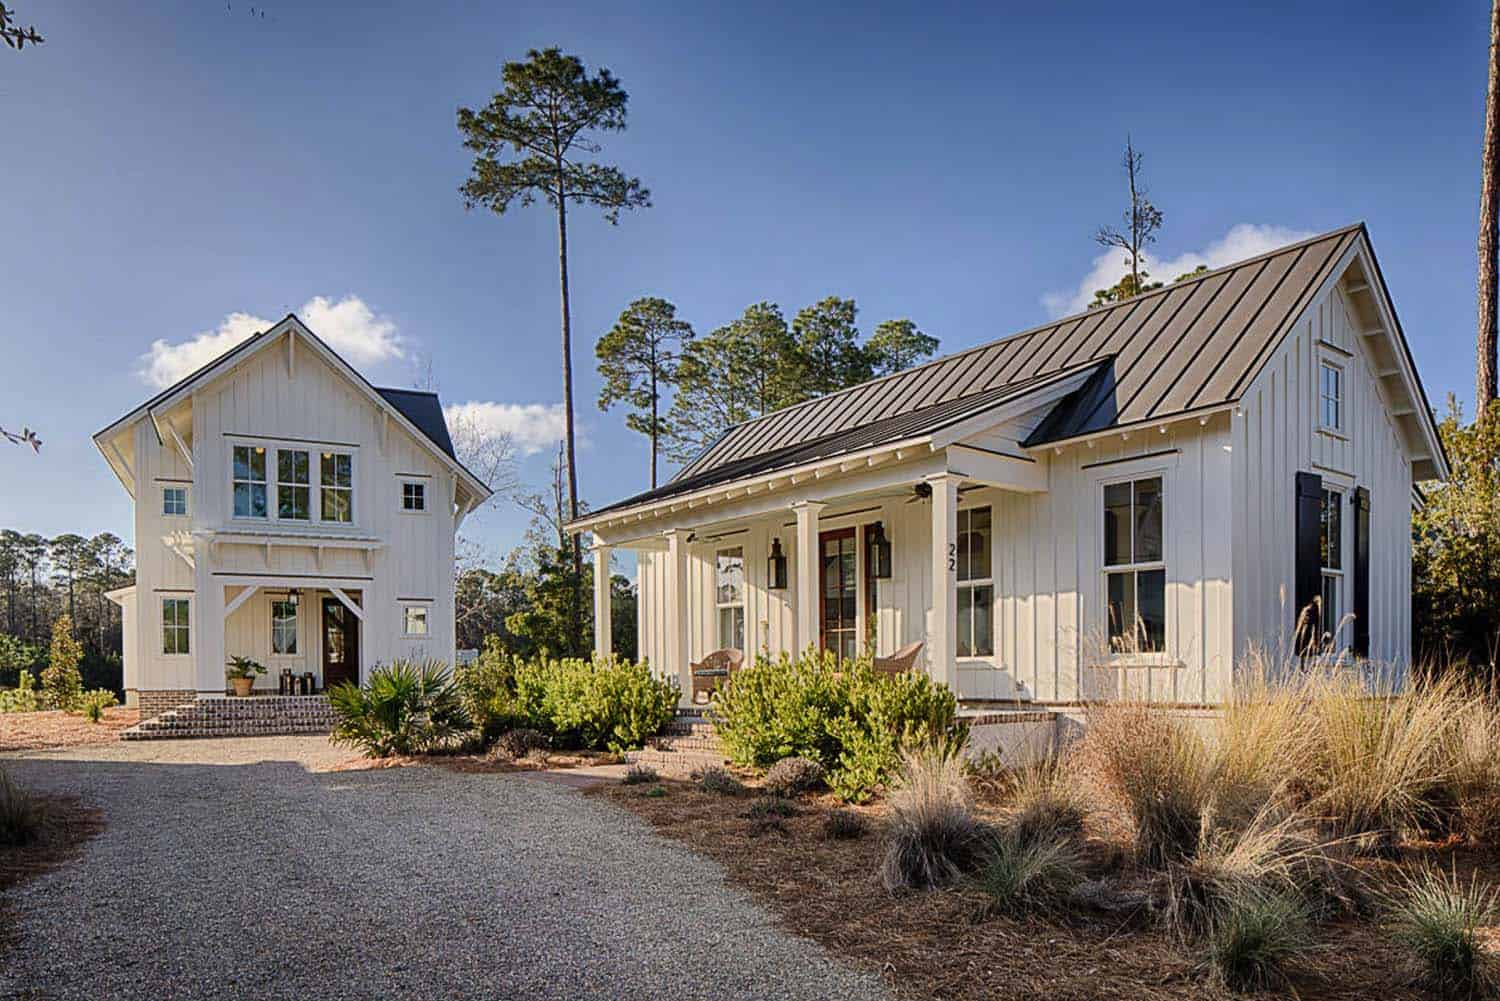 Inviting modern farmhouse cottage for family living in South Carolina